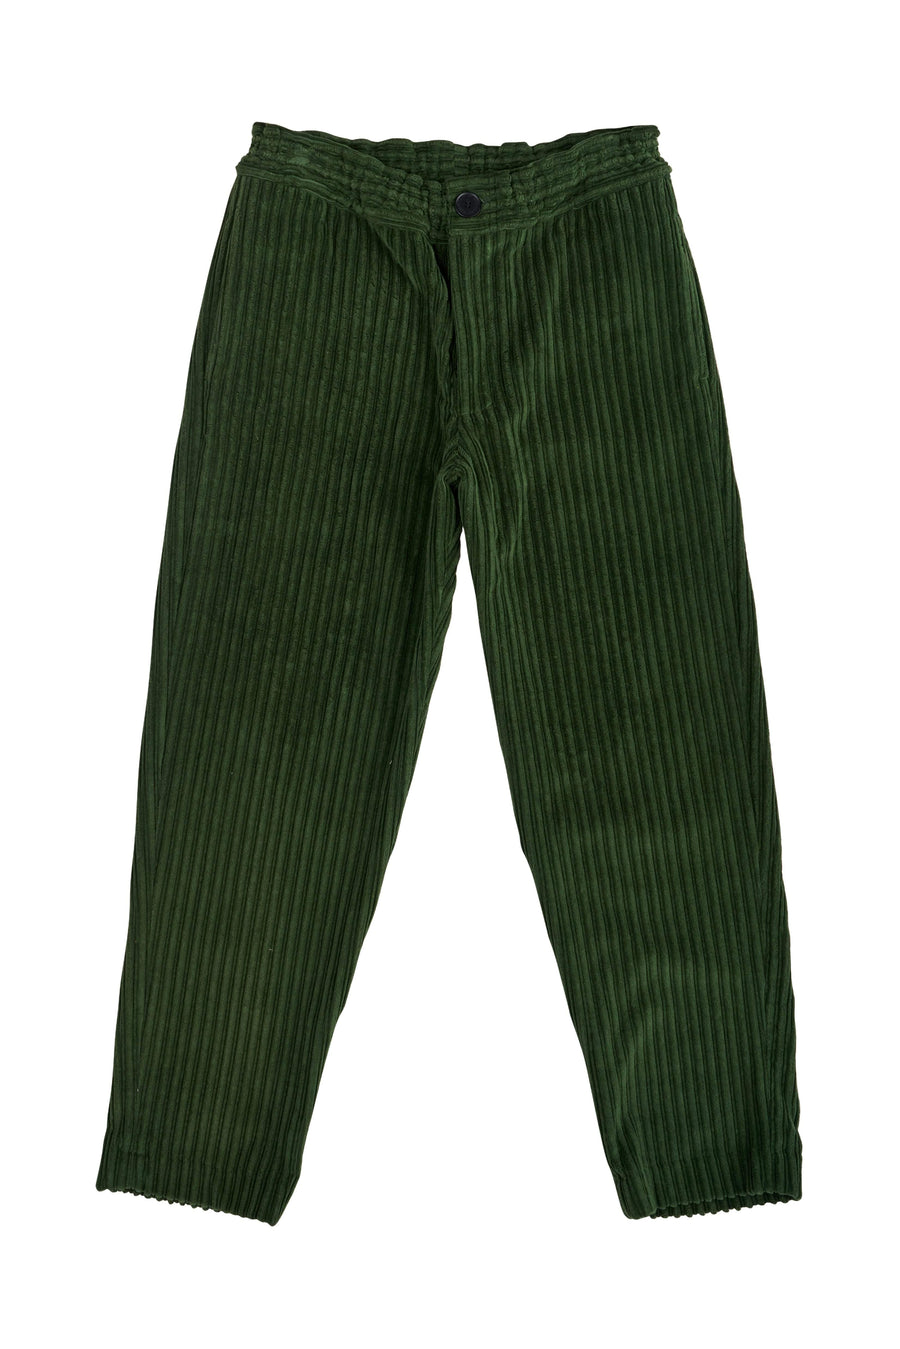 M524 Avon Trouser in Seaweed